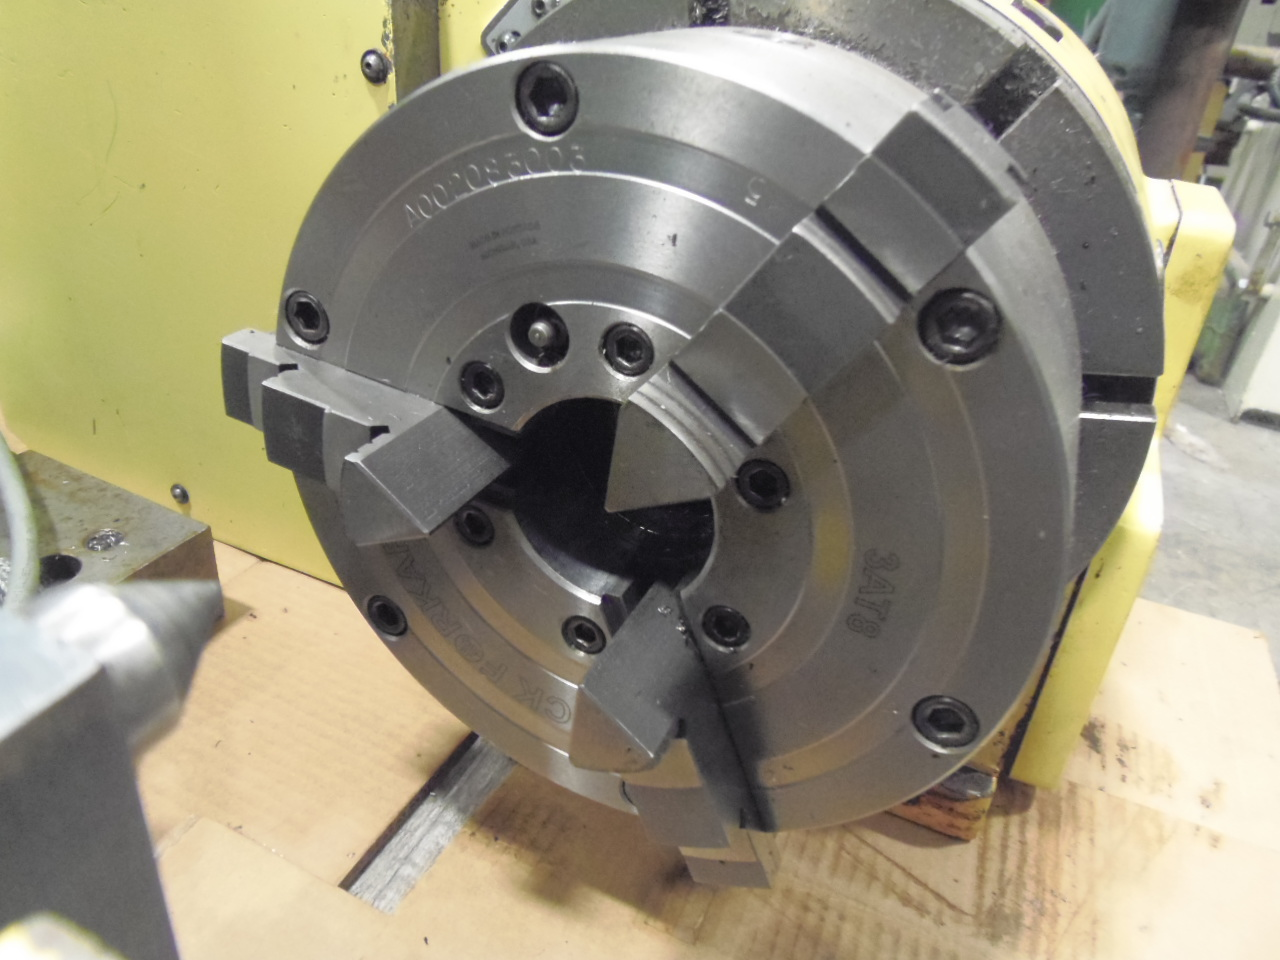 "NIKKEN ROTARY TABLE, MODEL CNC-250-LF, TAILSTOCK, 4TH AXIS DRIVE, 8"" 3-JAW CHUCK, 1993"